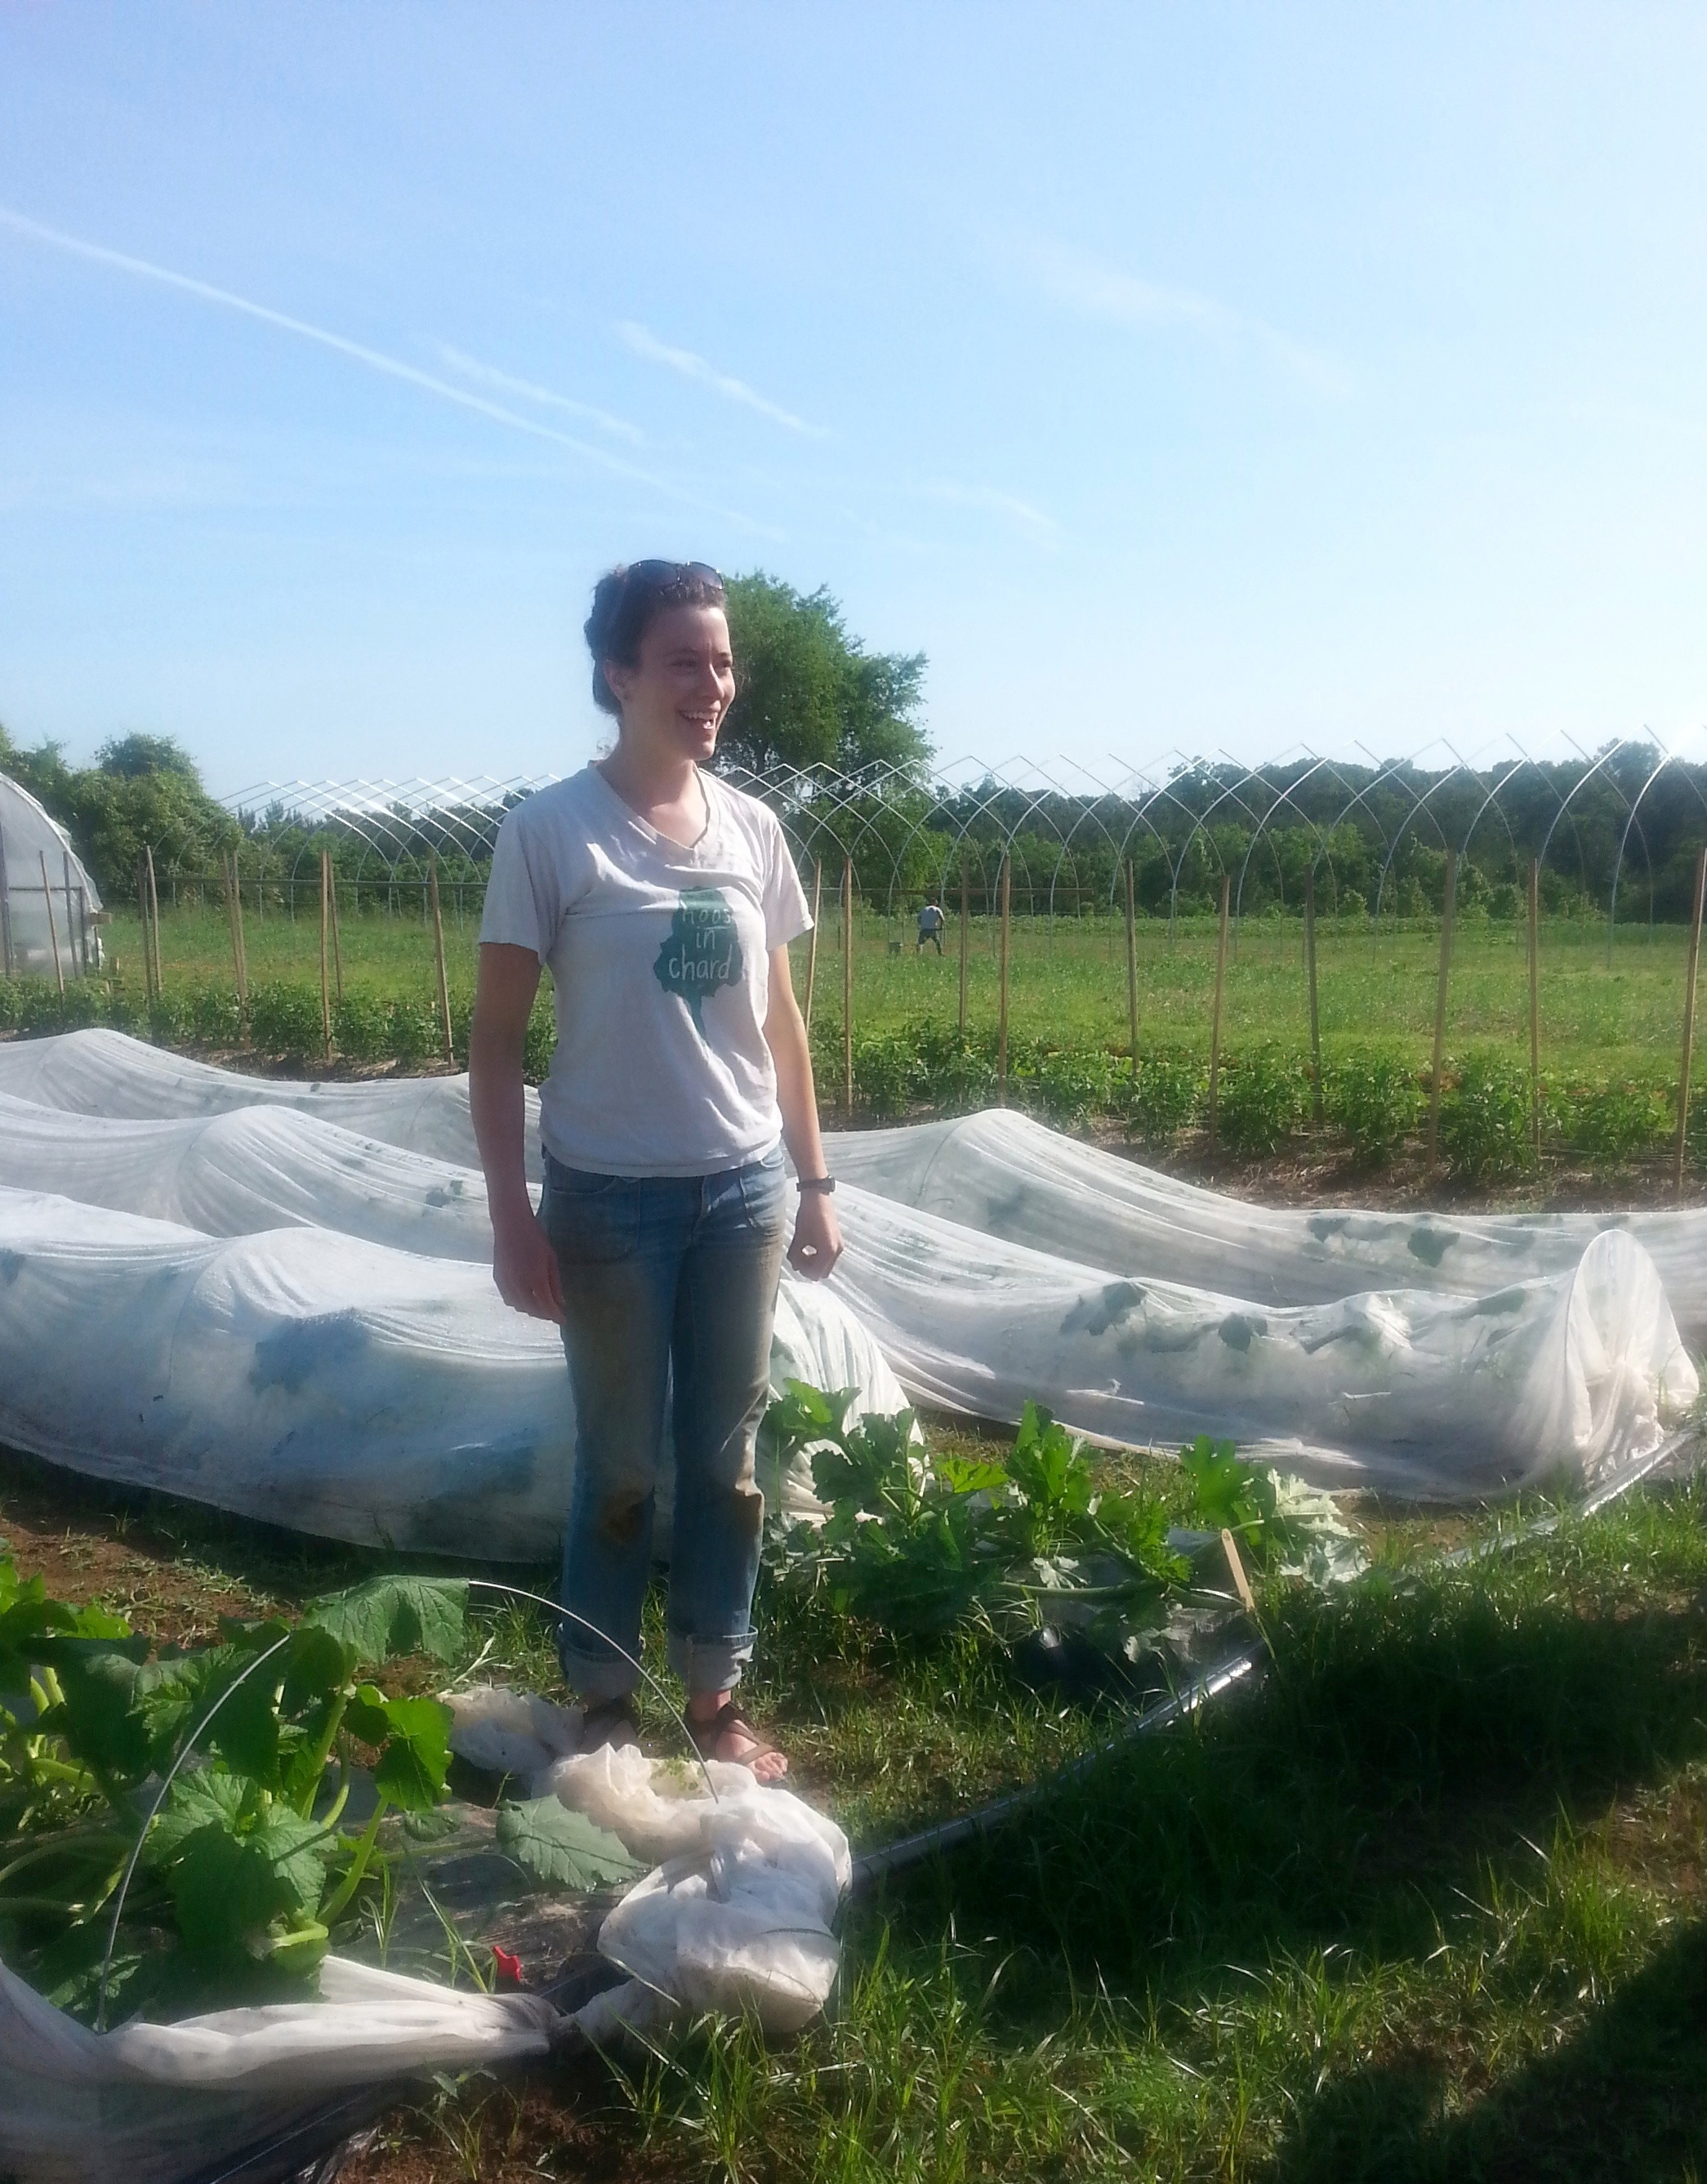 Claire, Program Coordinator, is a welcoming presence on the farm.